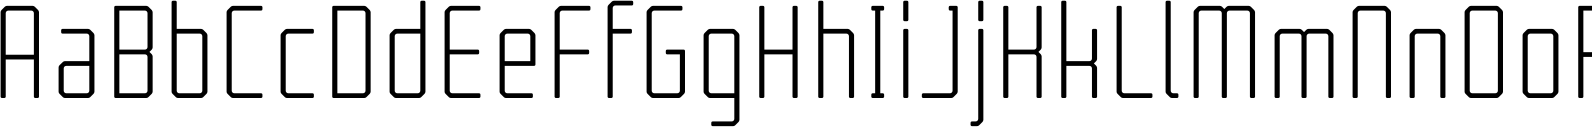 Tecnica Regular Alternate Font